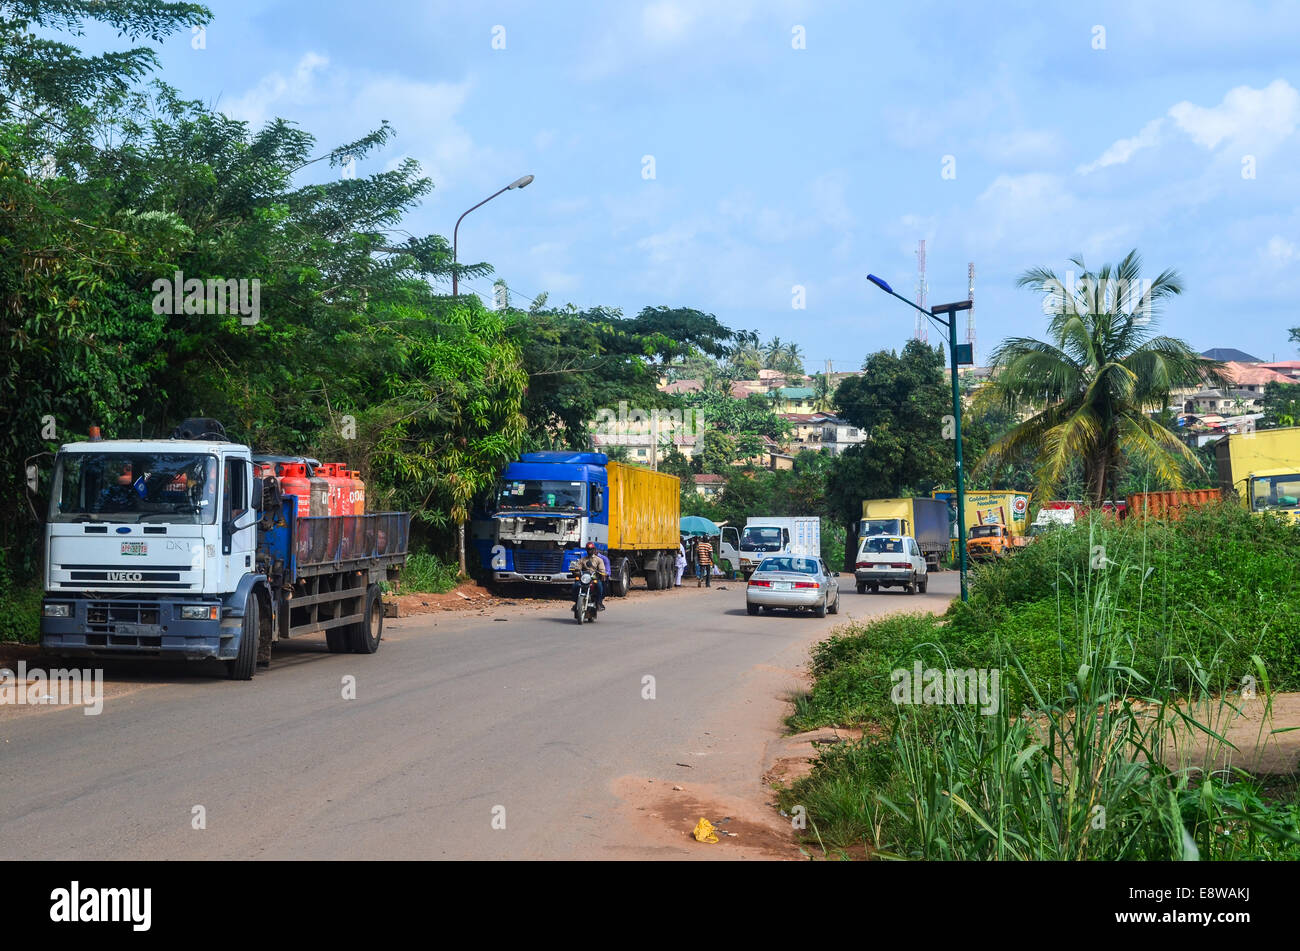 Trucks in the city of Ilesa, Nigeria - Stock Image